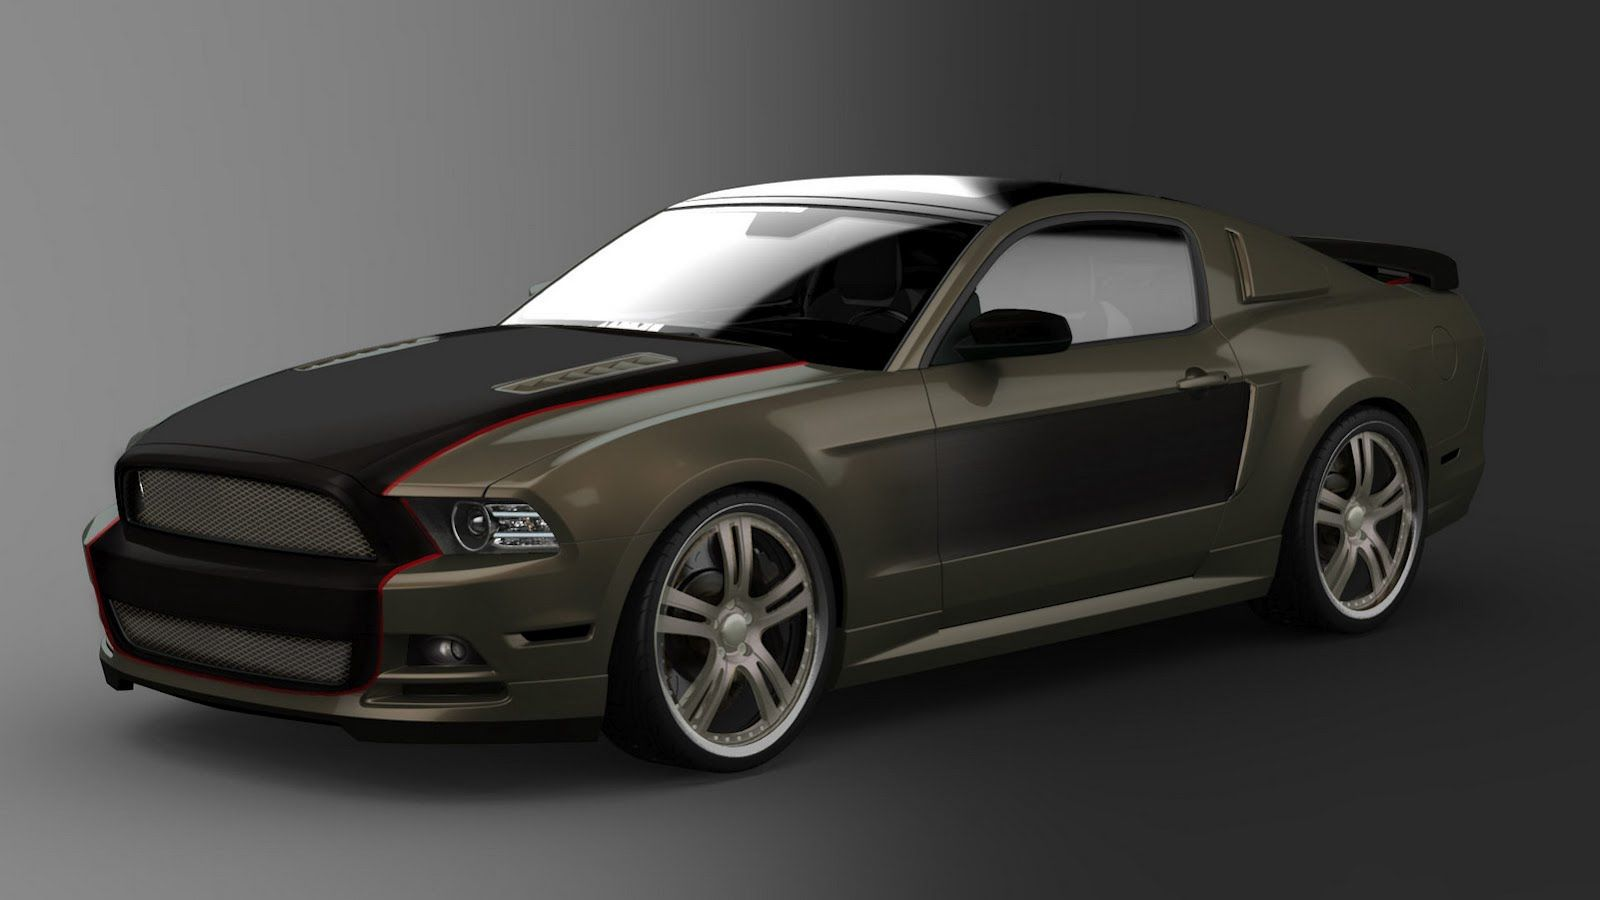 2009 mustang mustang 360 ford mustang gt hot rod cars wild mustangs